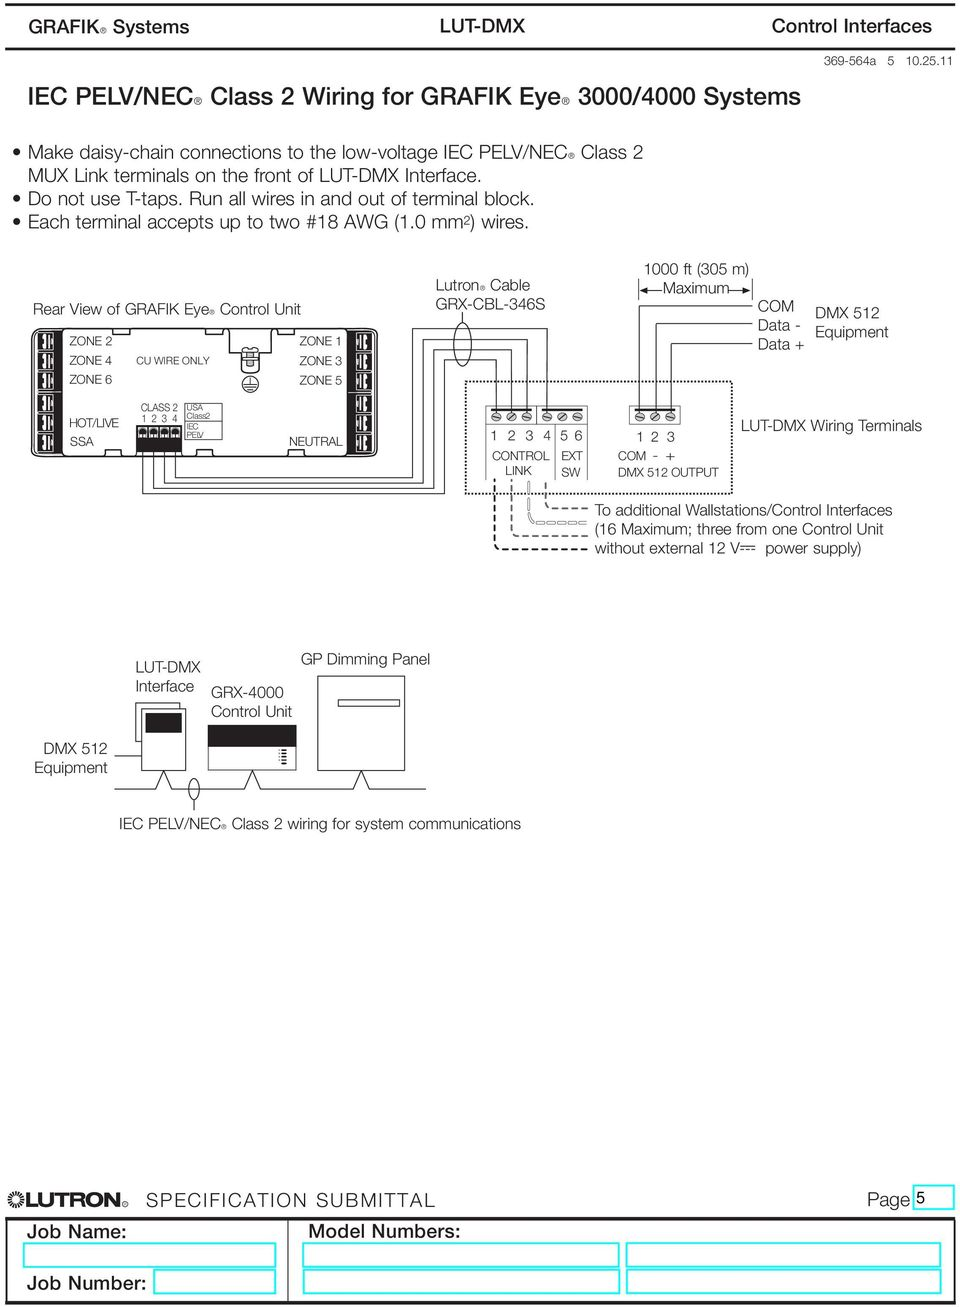 Control Interfaces Grafikr Systems A Lut Dmx Pdf Dmxprojectscom Dmx512 Lighting Projects Relay Schematic Rear View Of Grafik Eyer Unit Zone 2 1 4 Cu Wire Only